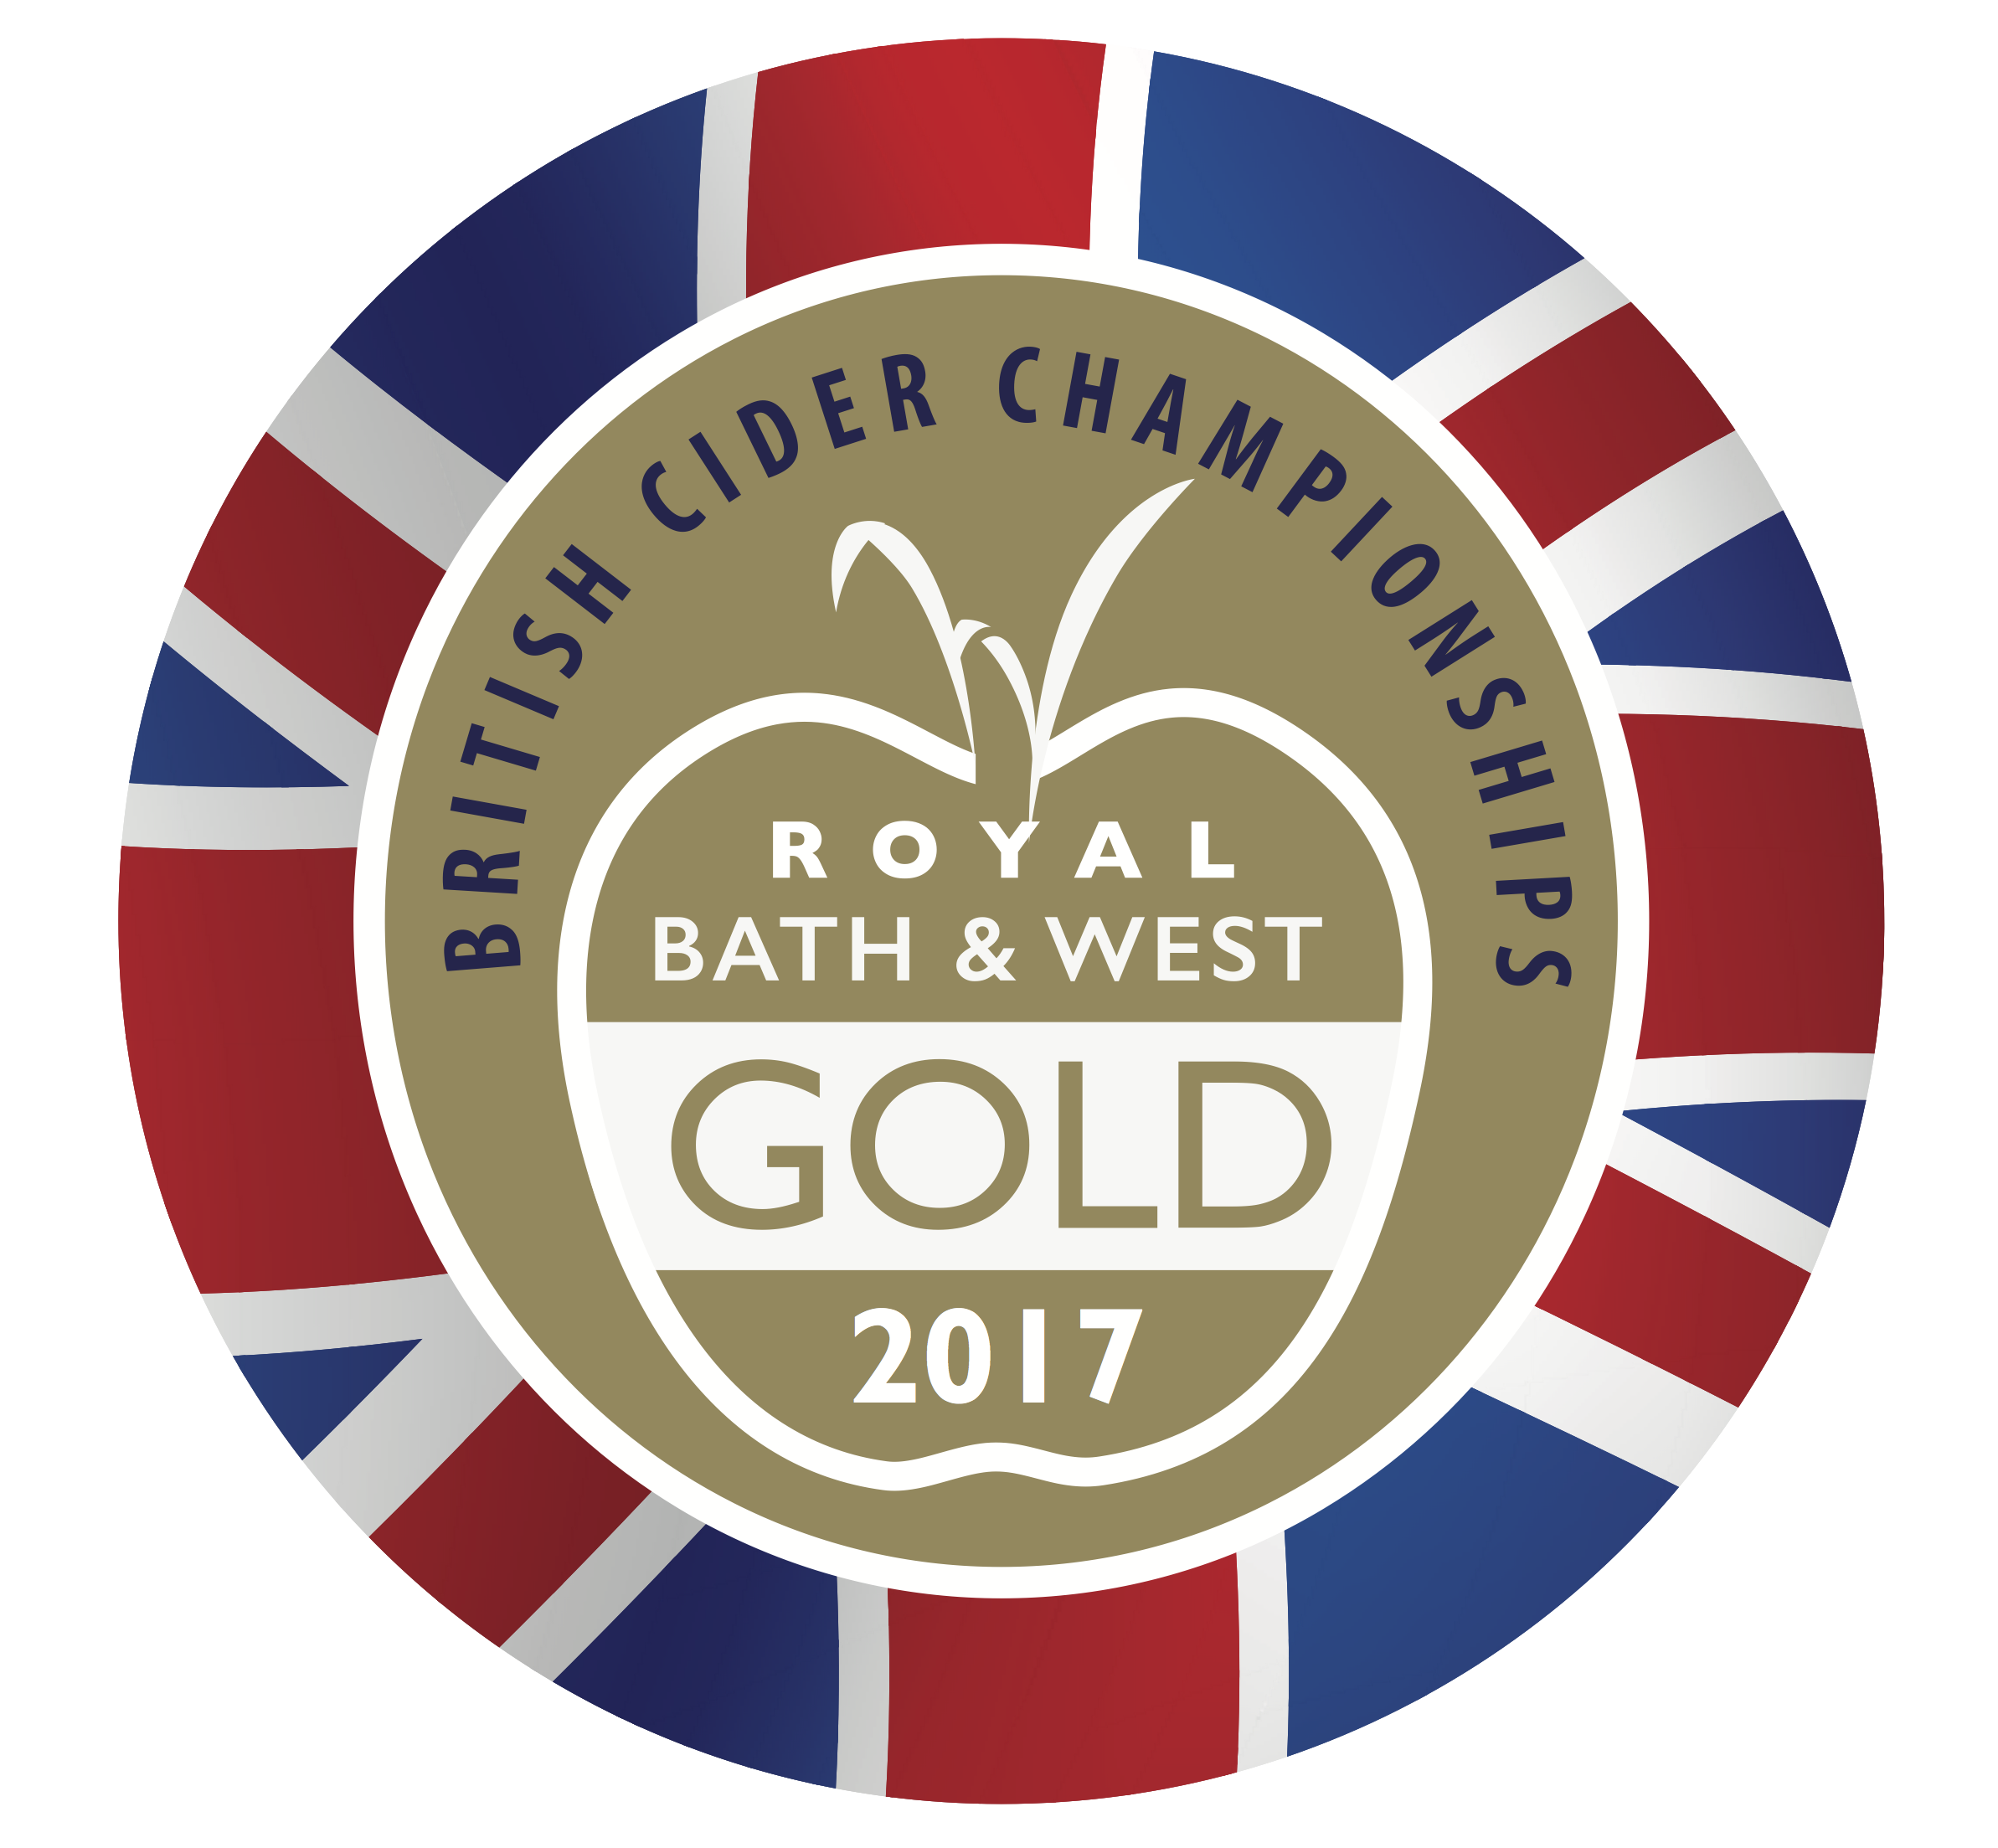 Vintage Perry 2014 - Gold Medal and judged Reserve Champion in the sparkling perry category